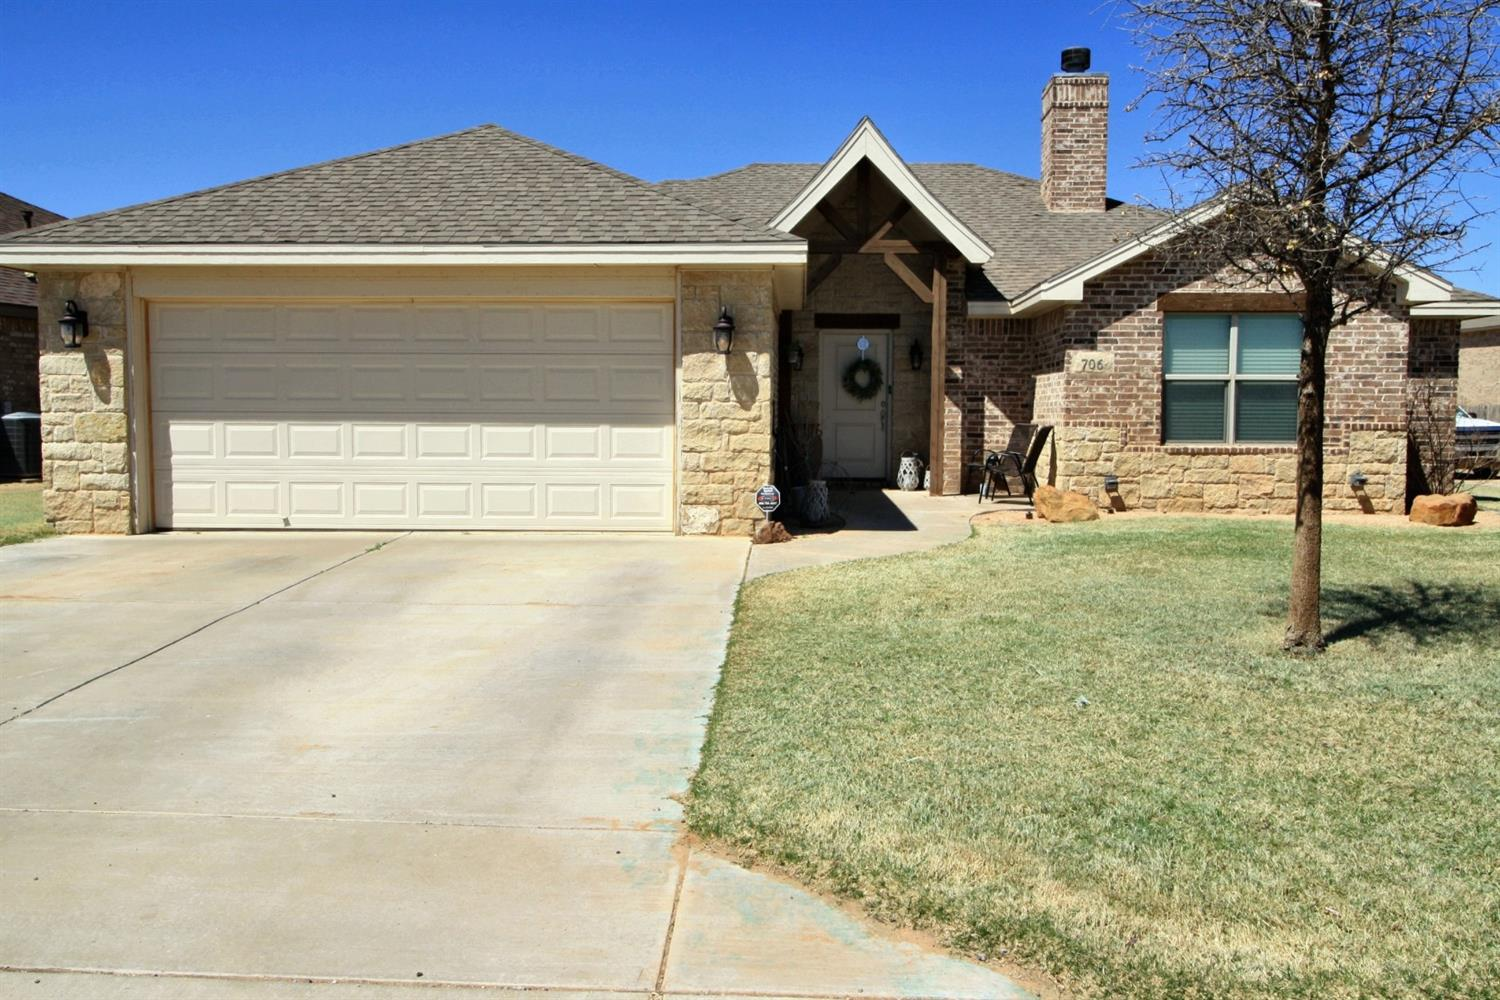 primary photo for 706 N 6th Street, Wolfforth, TX 79382, US